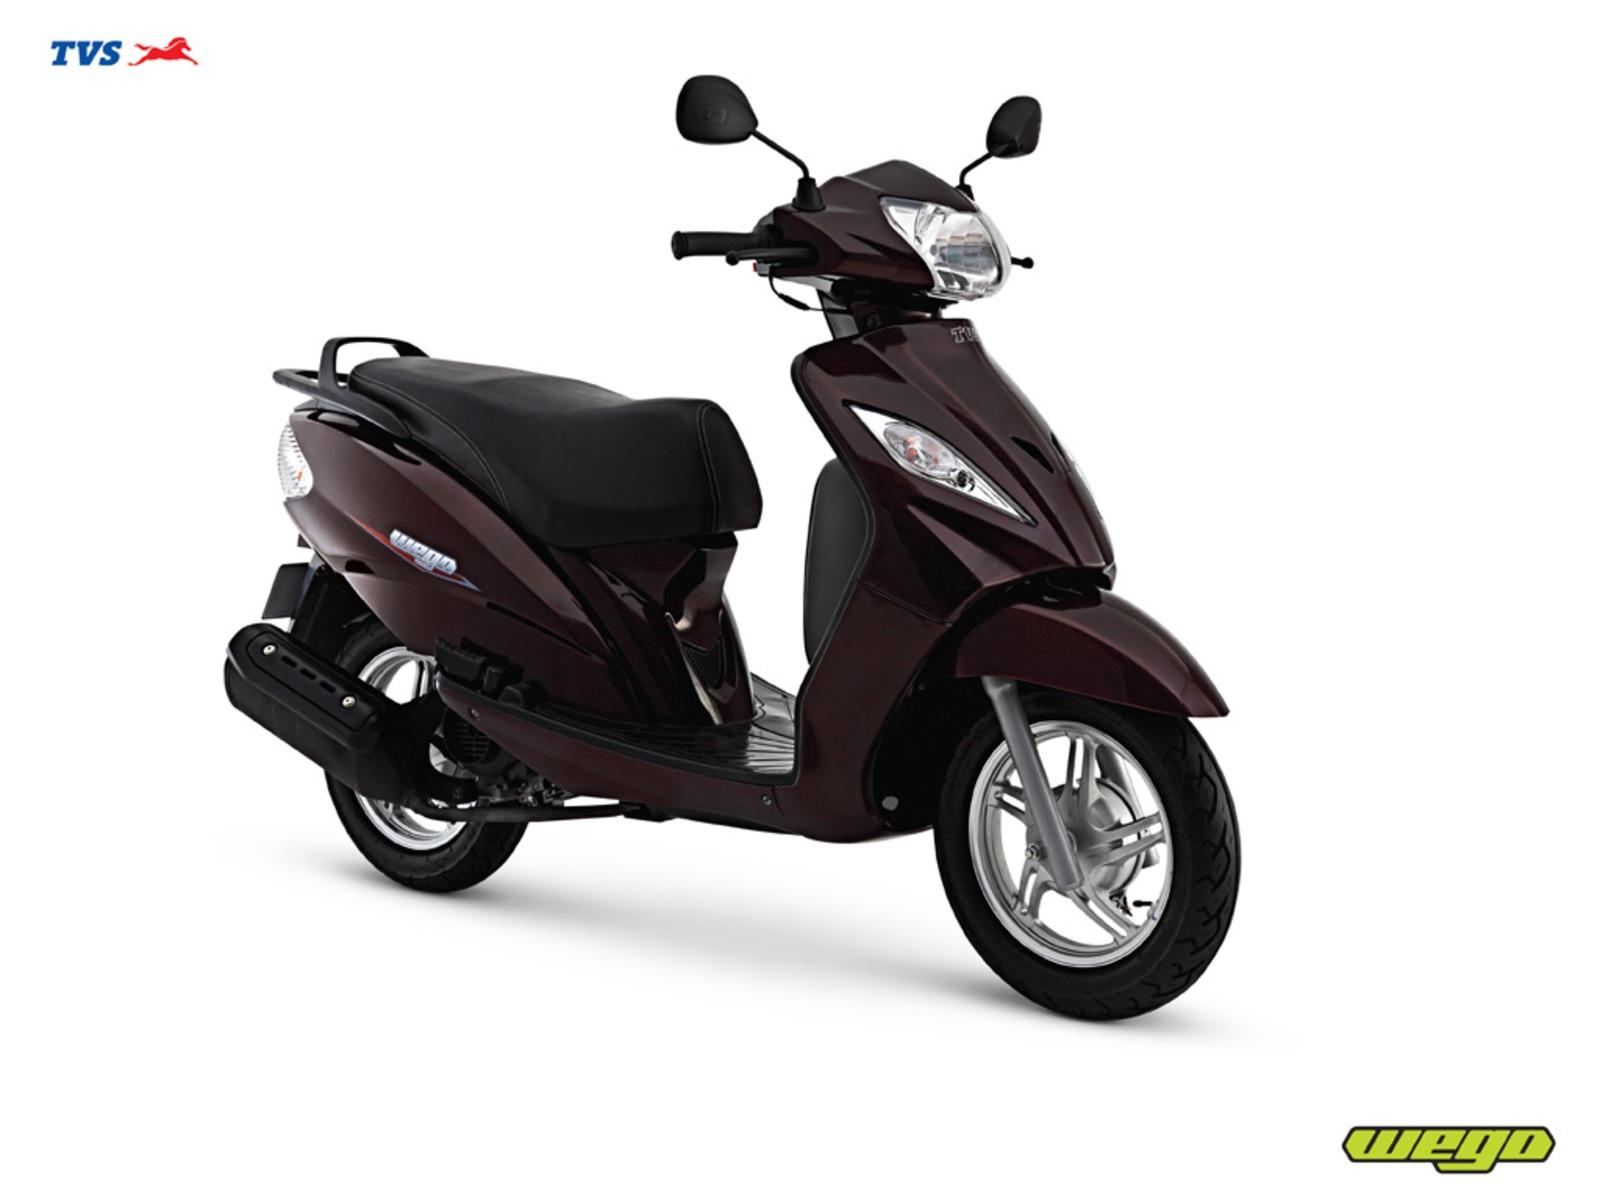 Tvs scooty photo - 10